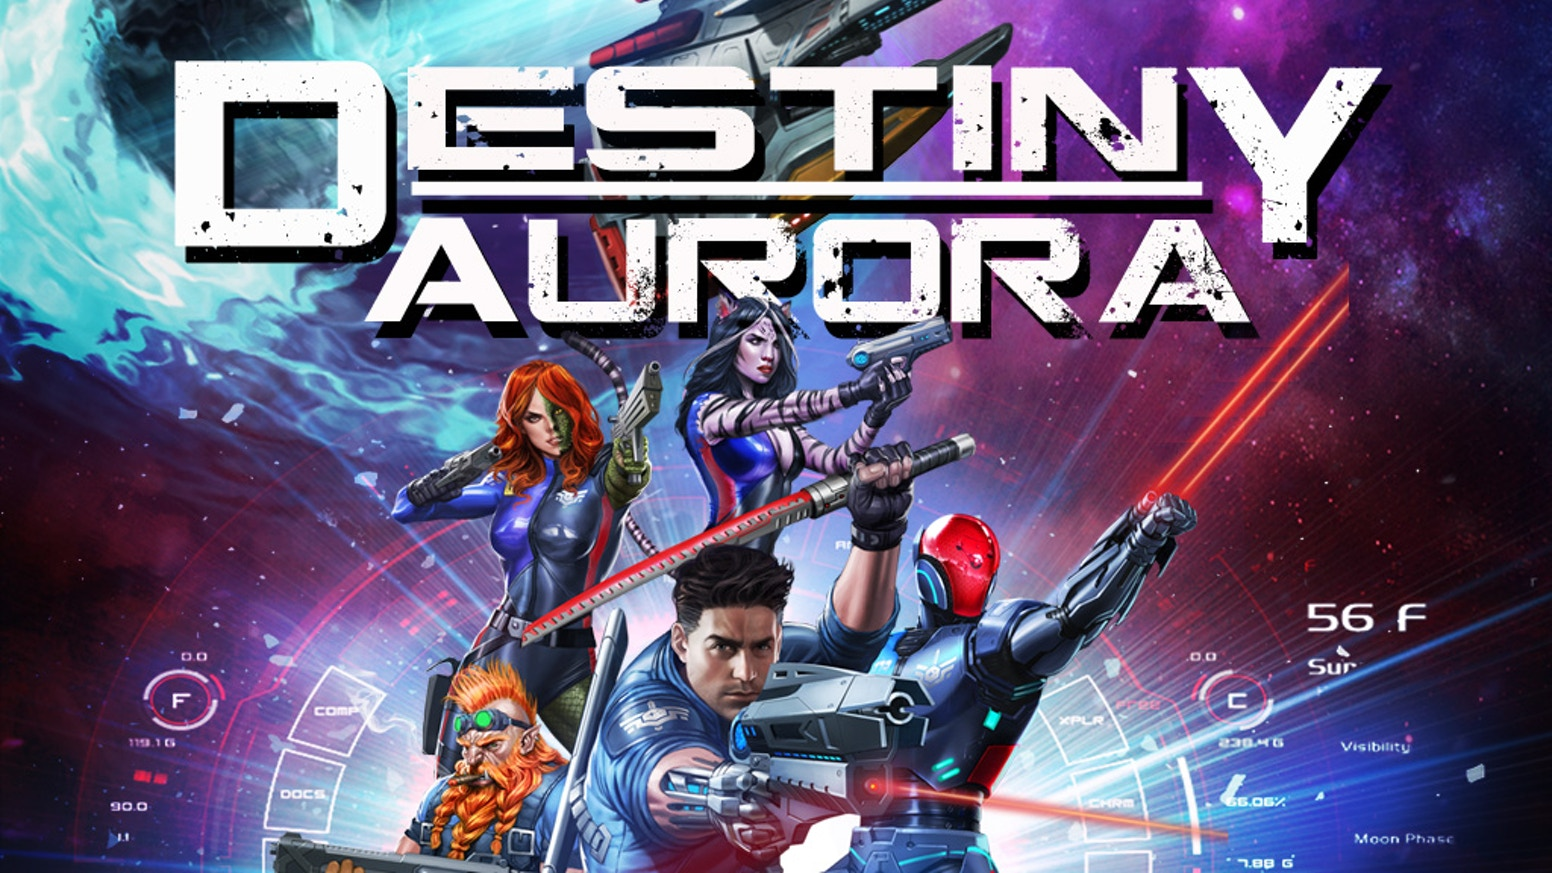 Destiny Aurora is the story of an eclectic, dysfunctional crew of an intergalactic police ship, whose captain is completely unorthodox.